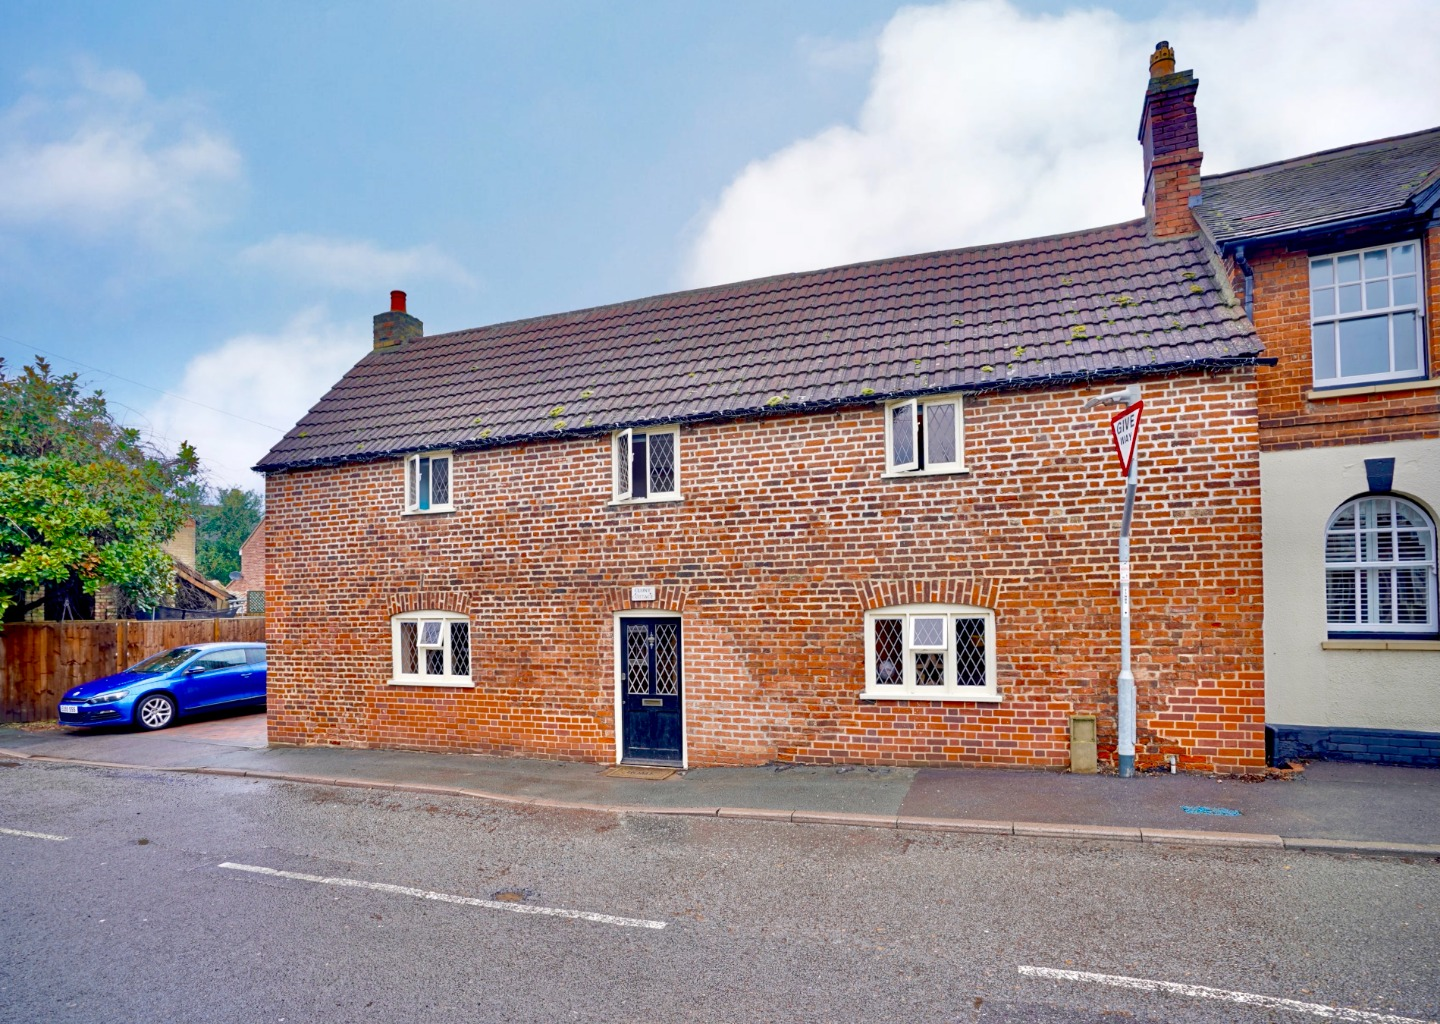 5 bed detached house for sale in Station Lane, St. Neots - Property Image 1